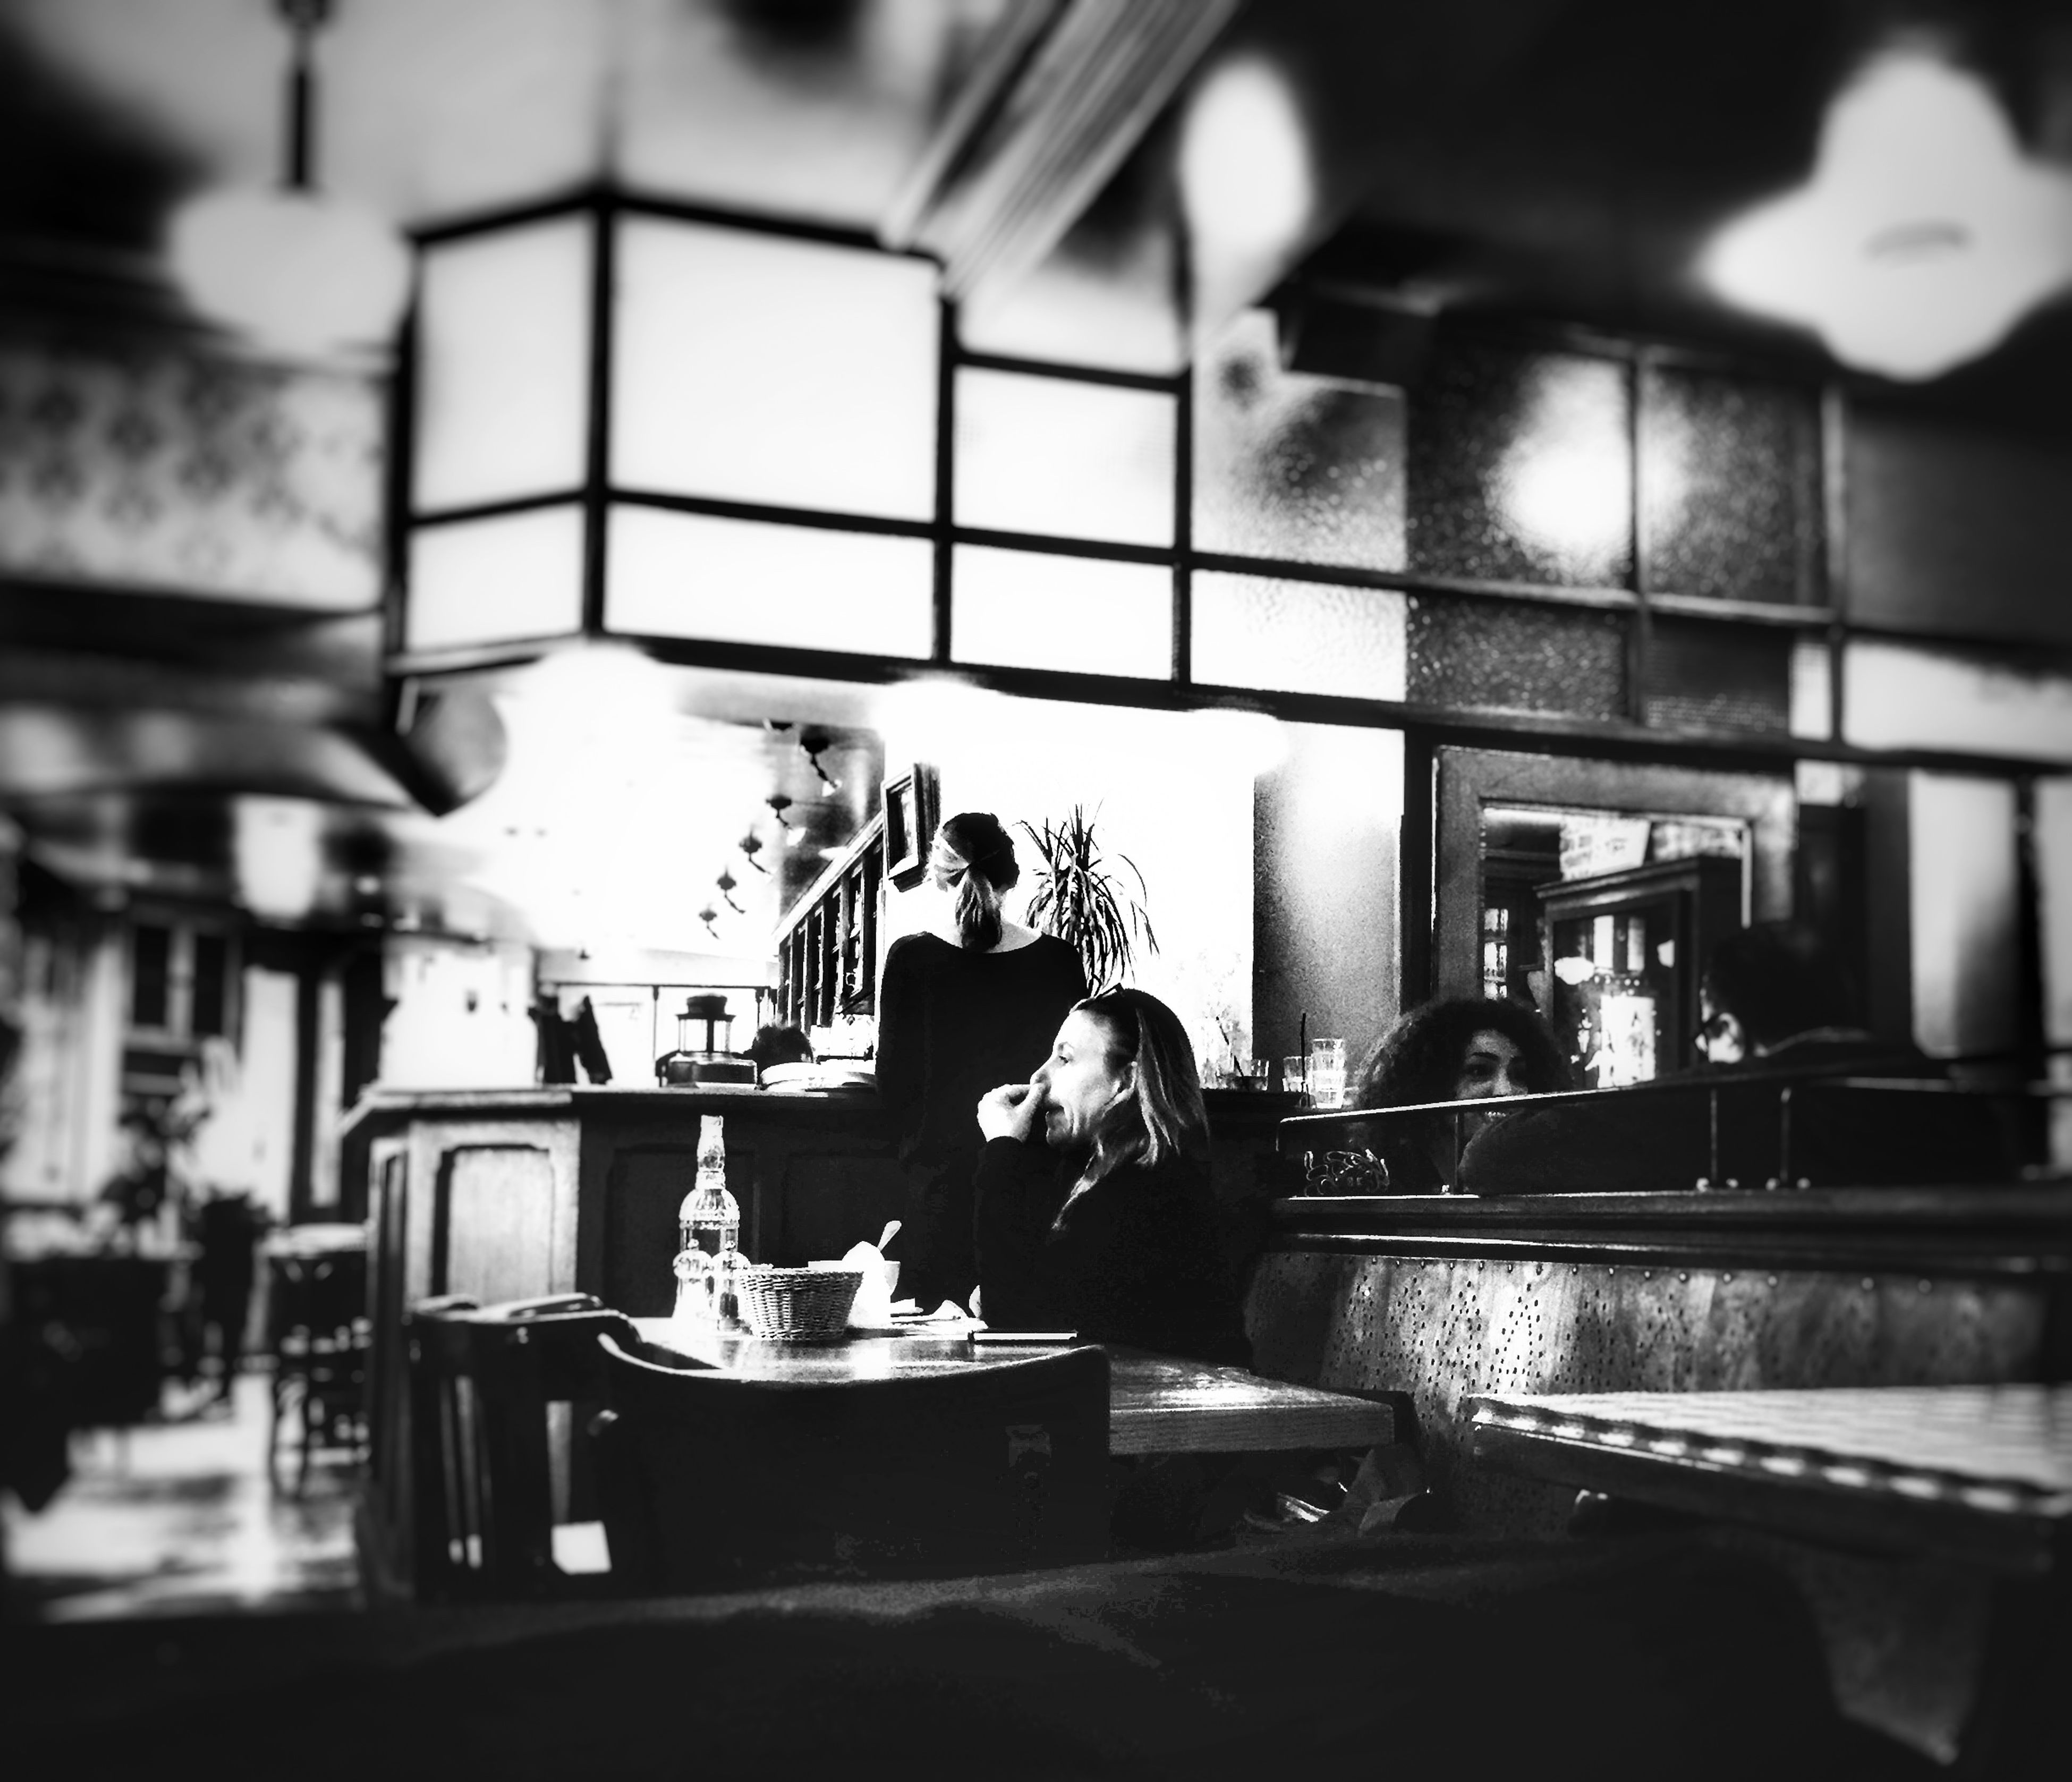 indoors, table, illuminated, food and drink, focus on foreground, restaurant, selective focus, domestic kitchen, still life, close-up, chair, incidental people, reflection, kitchen, stove, no people, preparation, container, kitchen utensil, absence